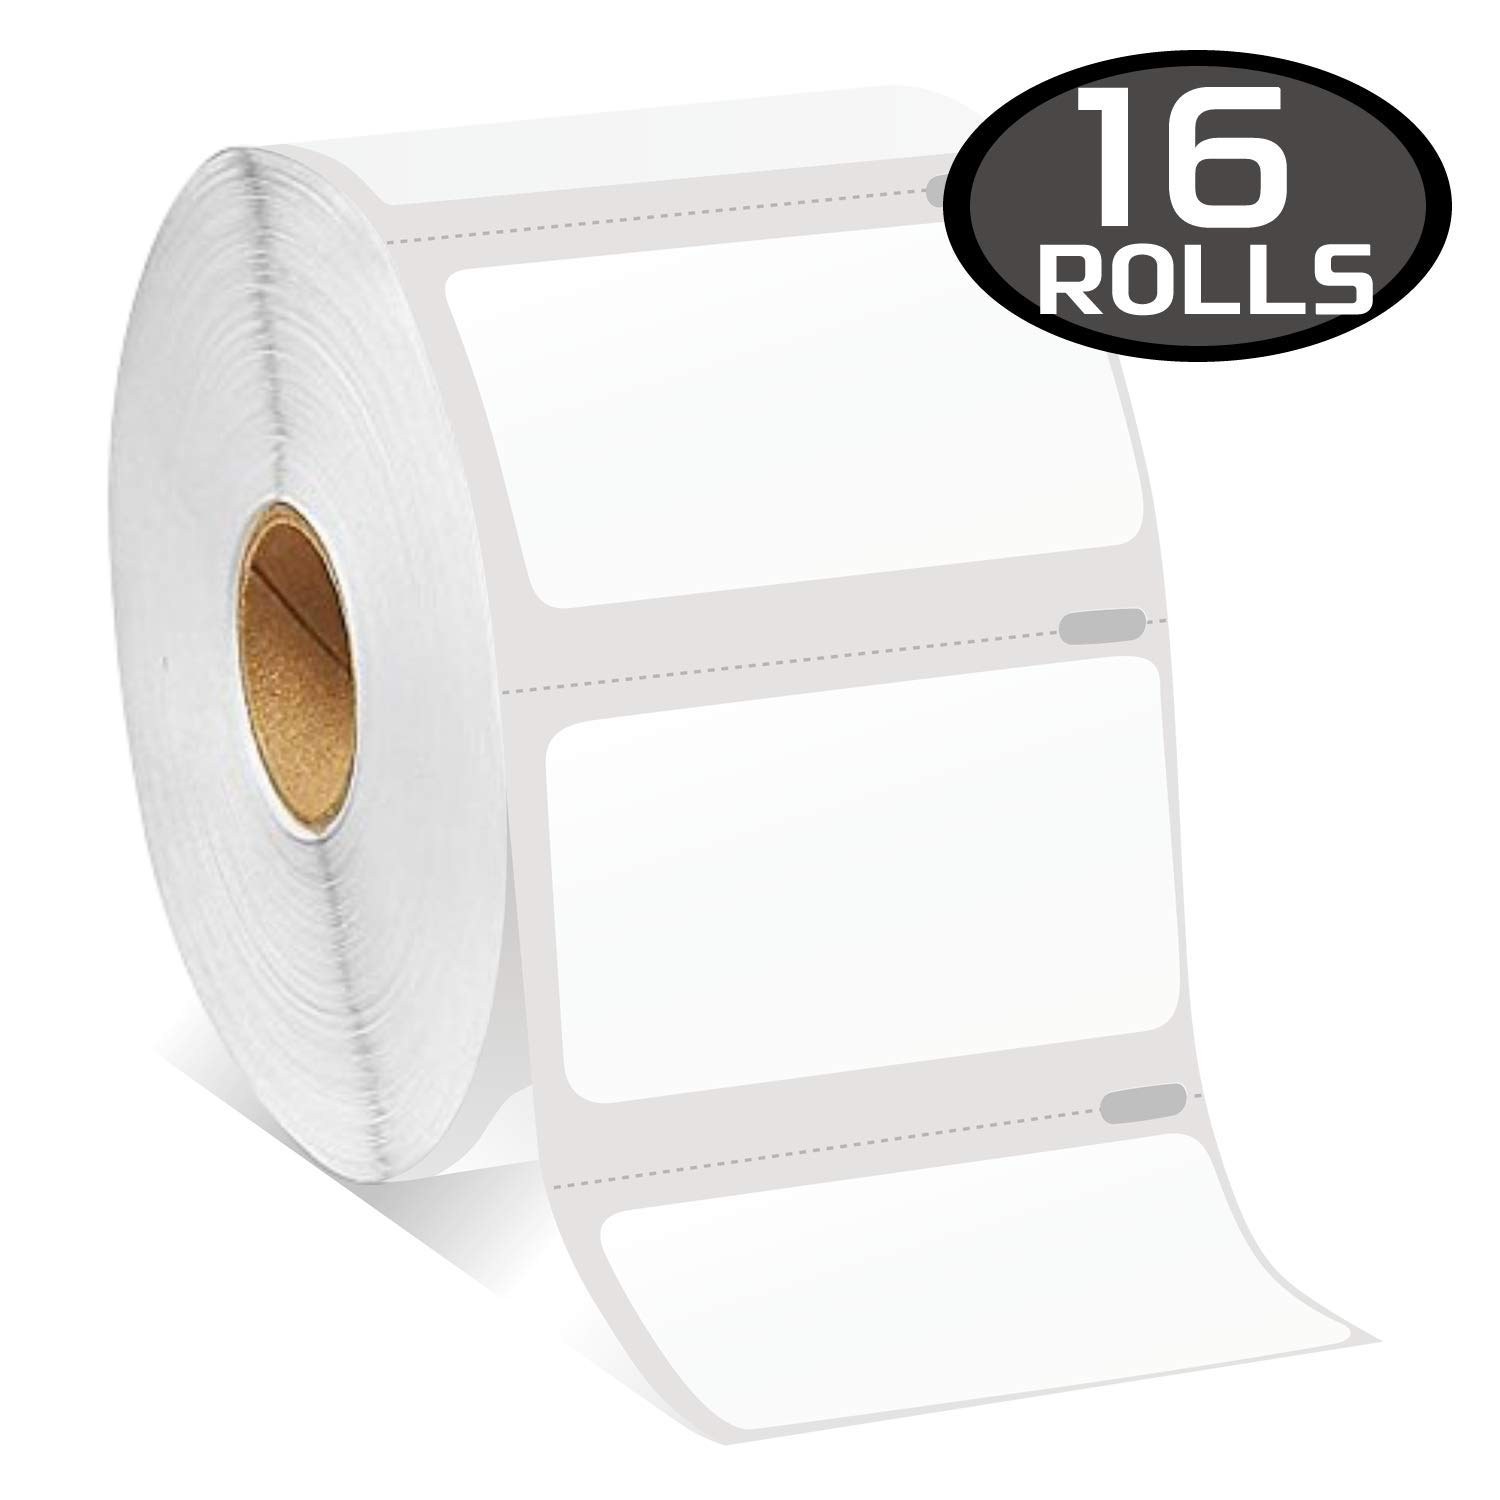 16 Rolls DYMO 30334 Compatible 2-1/4'' x 1-1/4''(57mm x 32mm) Medium Multipurpose/Barcode/FNSKU/UPC Labels,Strong Permanent Adhesive, Perforated